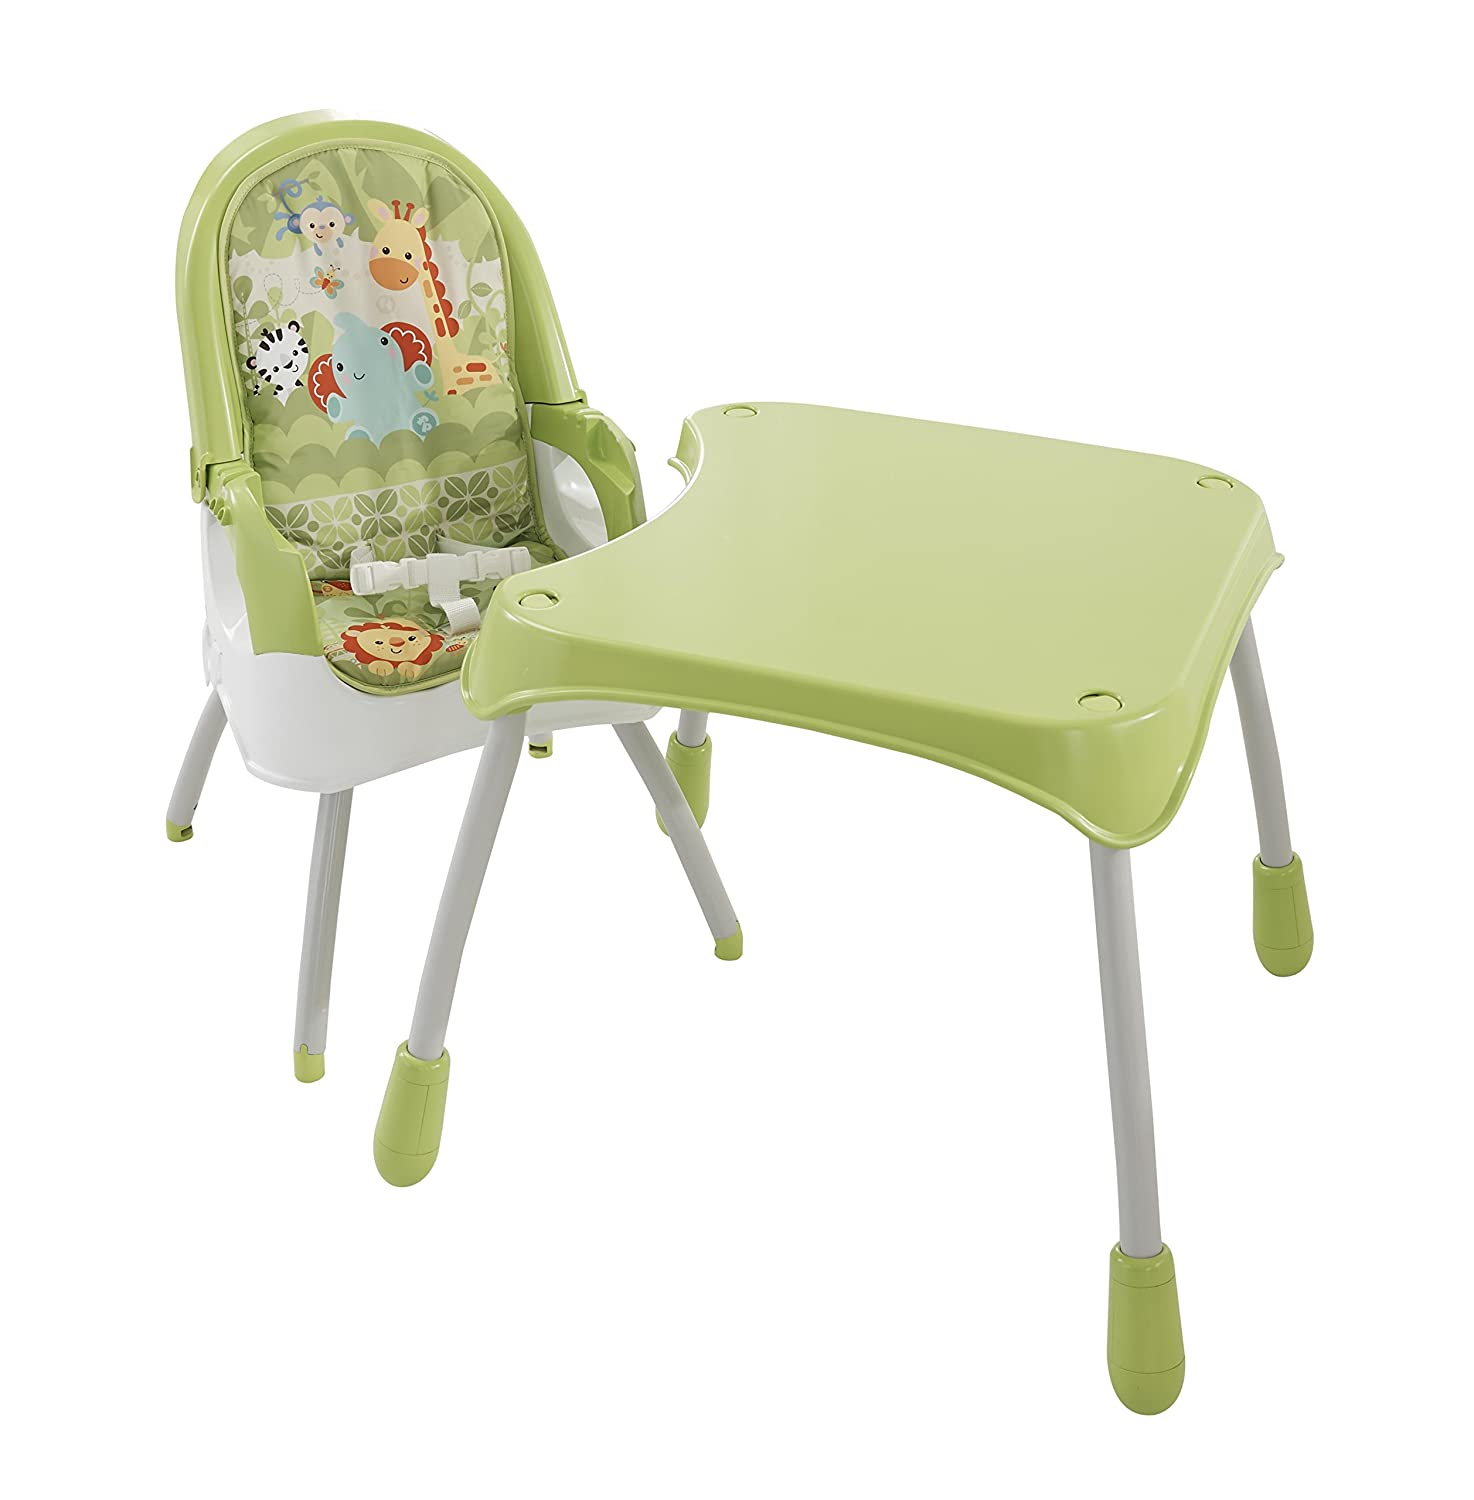 Buy High Chair Fisher Price 4 In 1 High Chair Green Best Home And